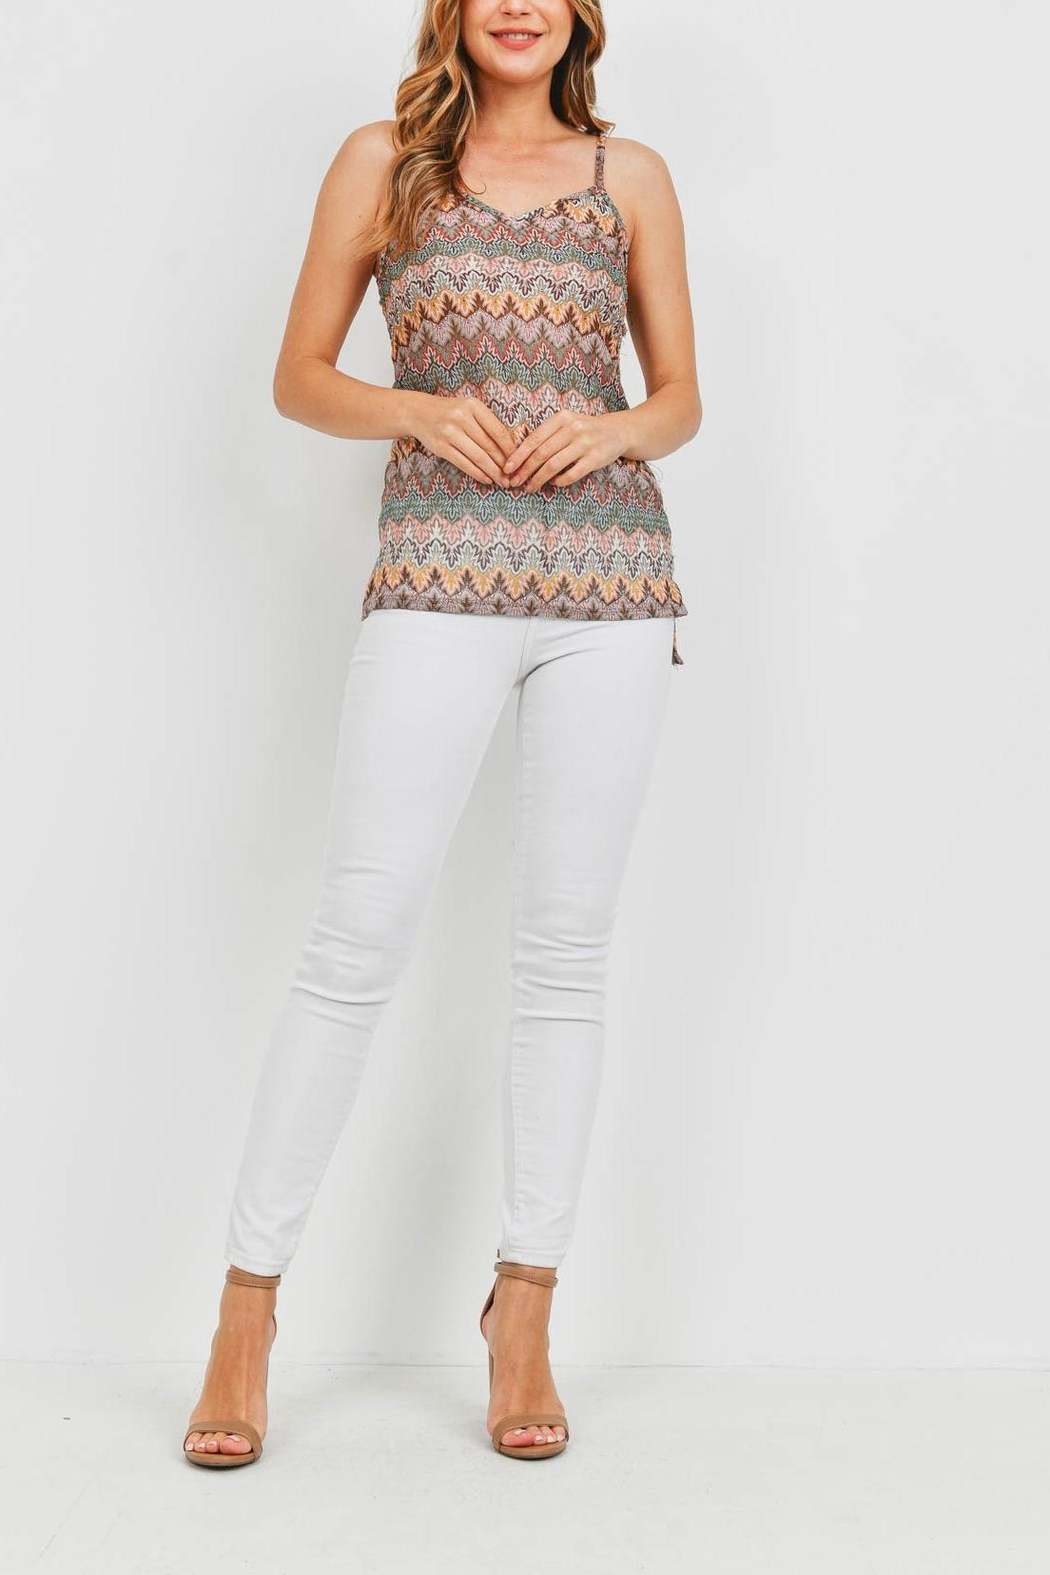 Riah Fashion Multi Color Top - Back Cropped Image